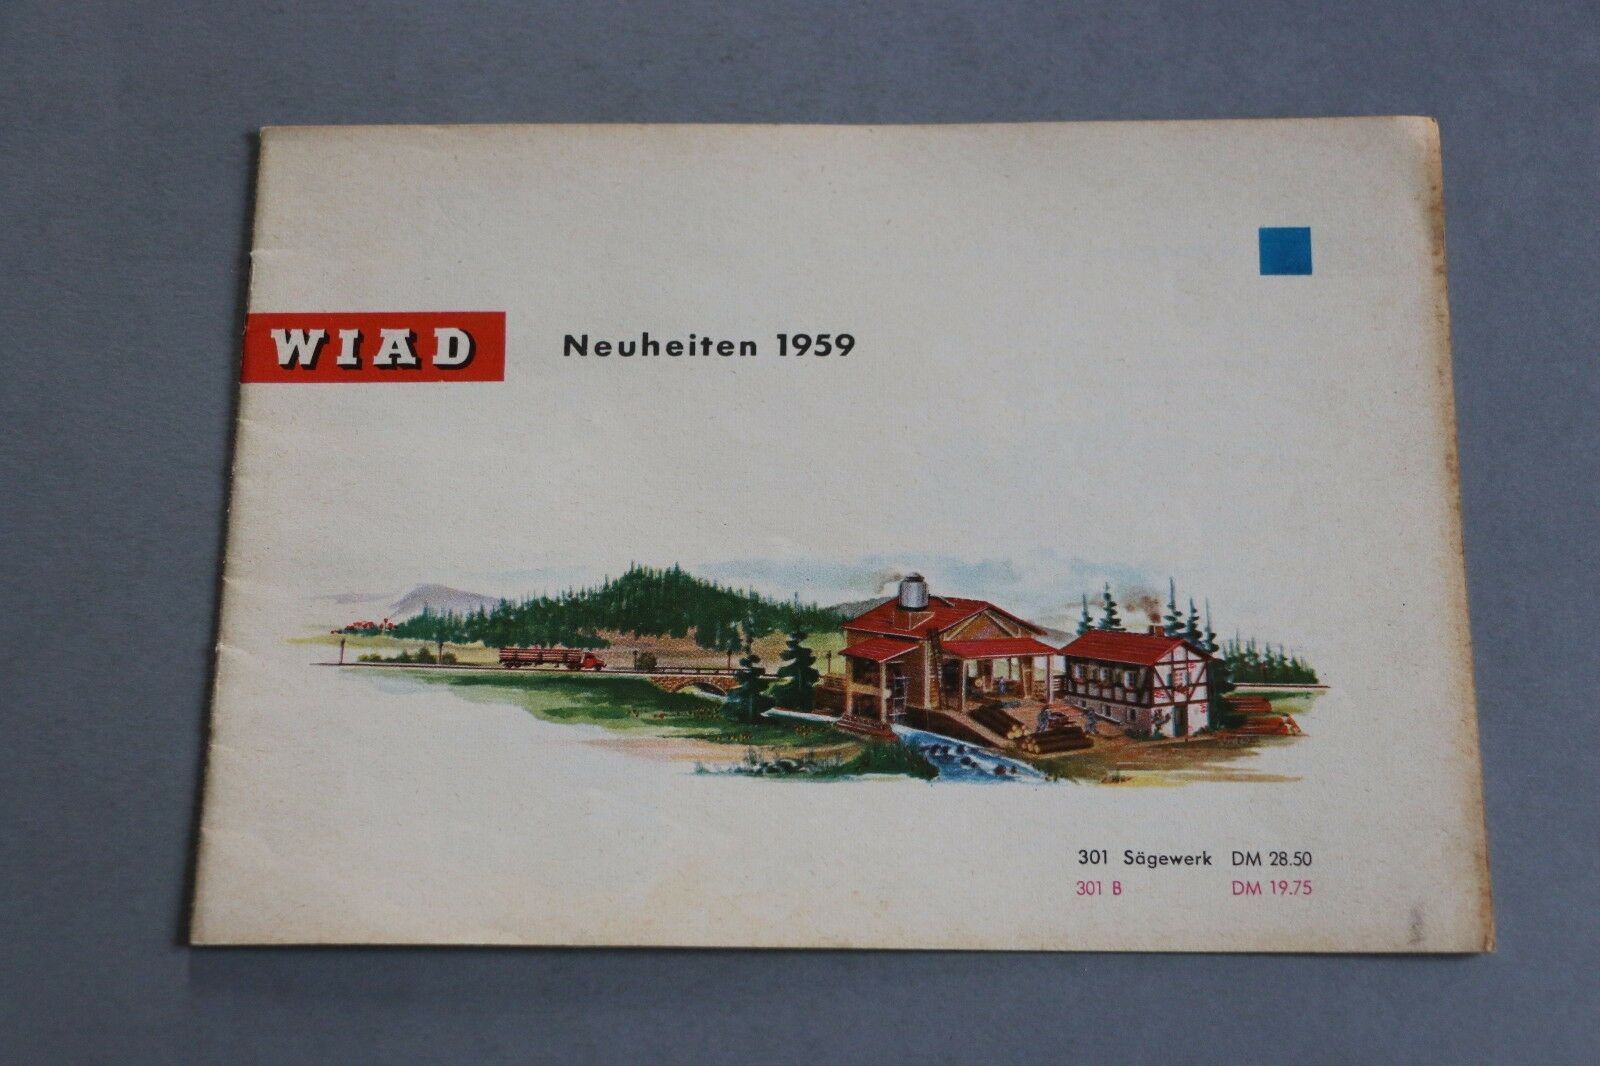 X479 WIAD Train Catalogue maquette 1959 12 pages 21x14,7 cm Deutch Katalog